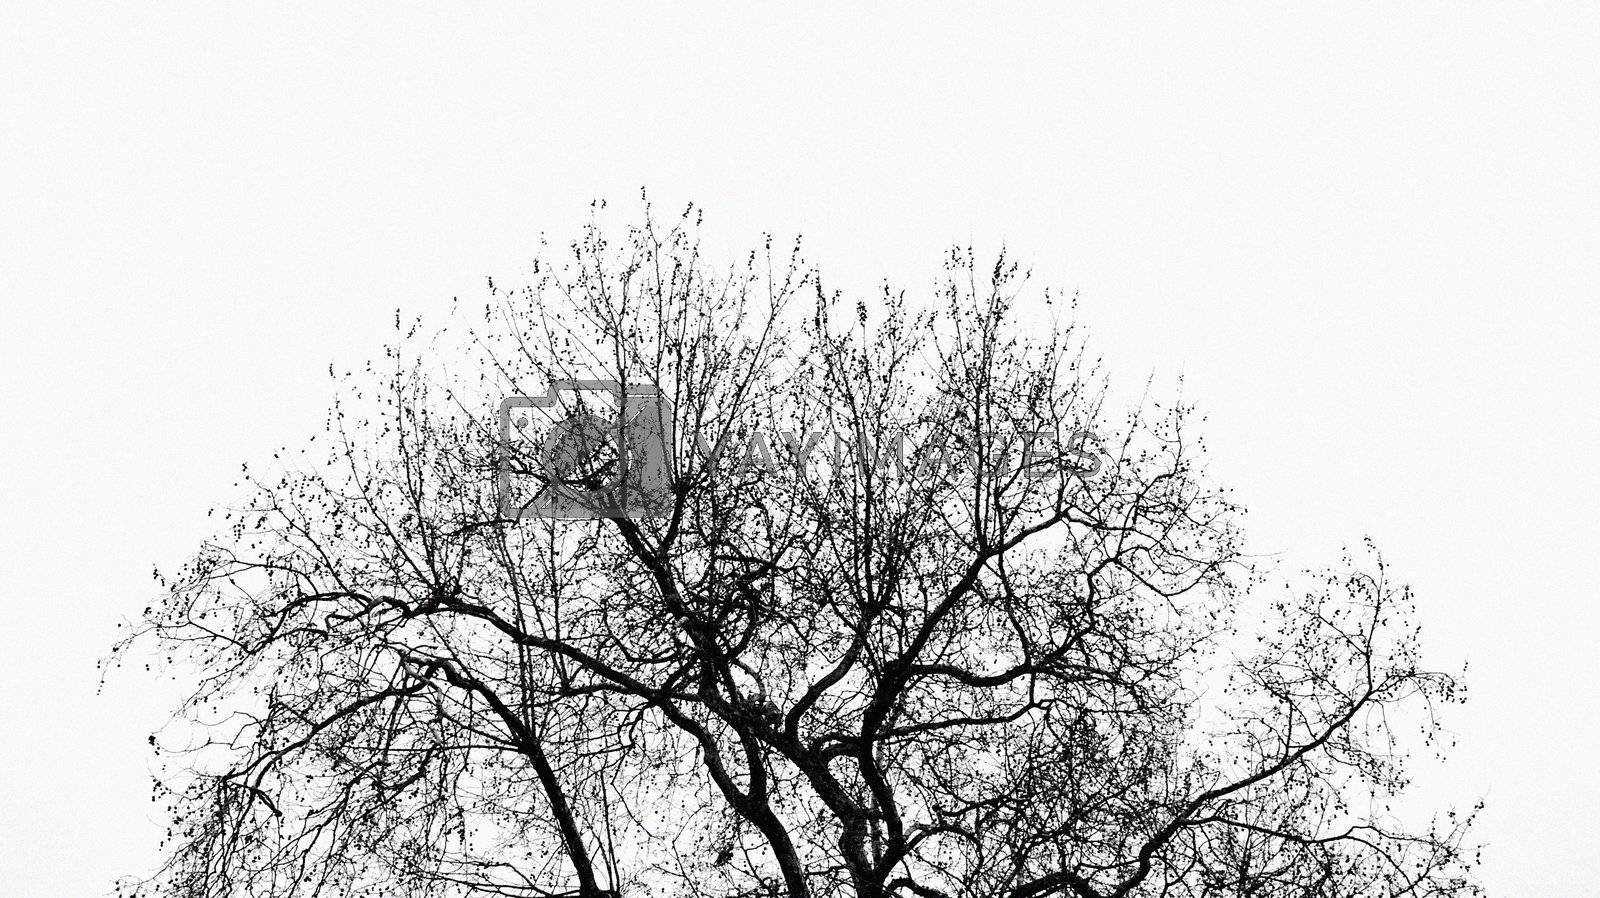 Tree without leaves, abstract nature